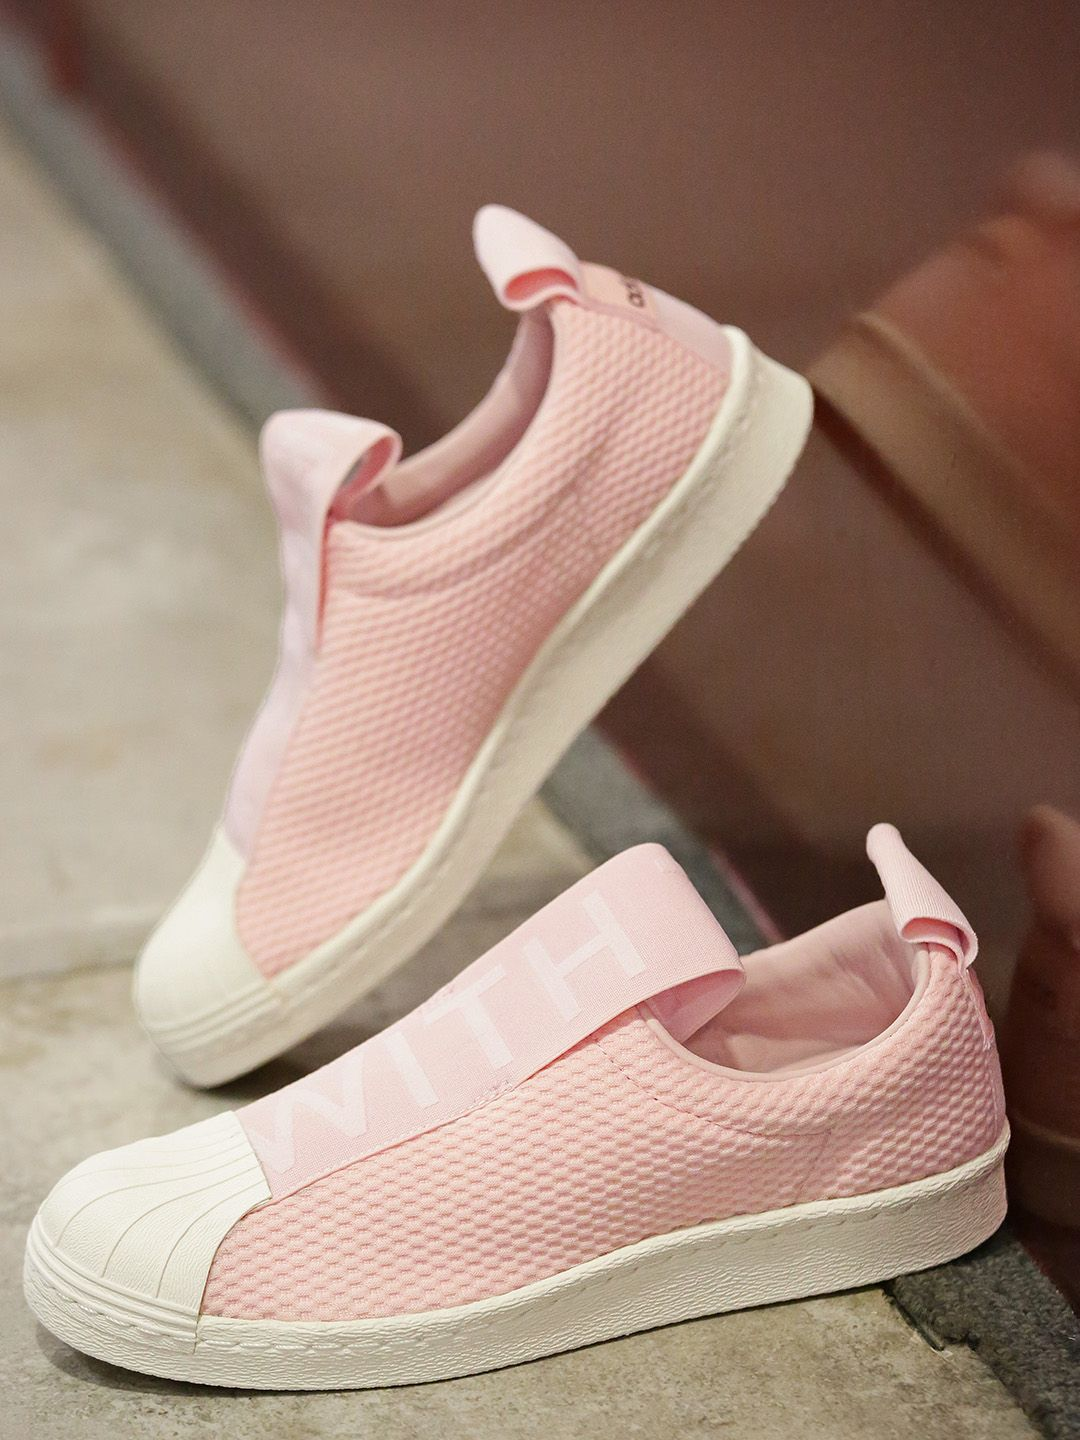 fdc70a533b Adidas Originals  Women  Pink Superstar BW3S Slip-On  Sneakers  women   fashion  style